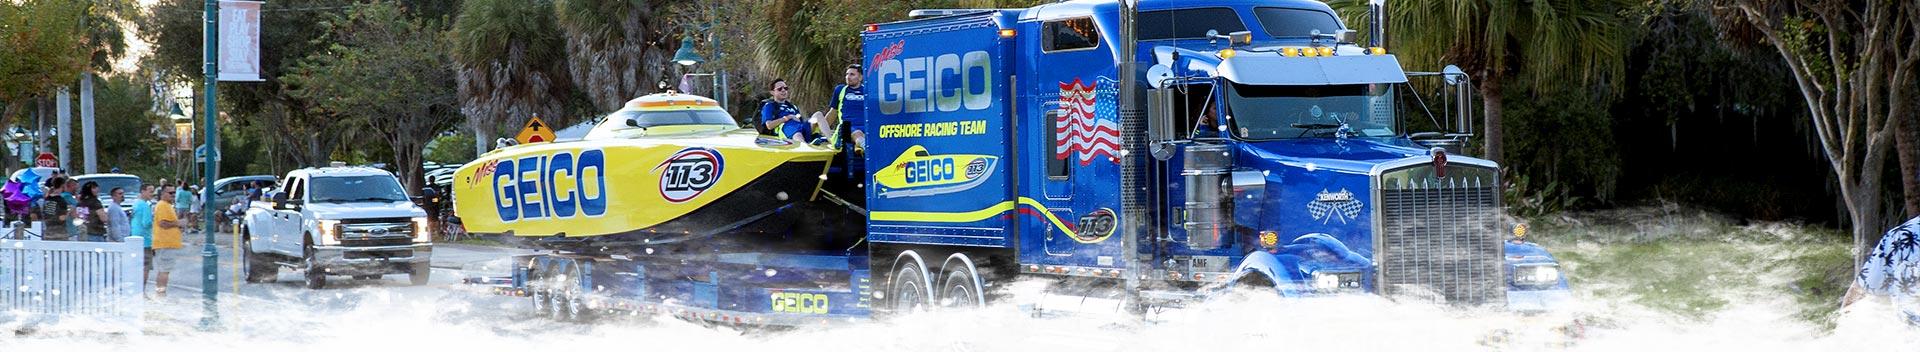 Geico Racing Boat on Dearborn Street During the Pre-Race Block Party 2019